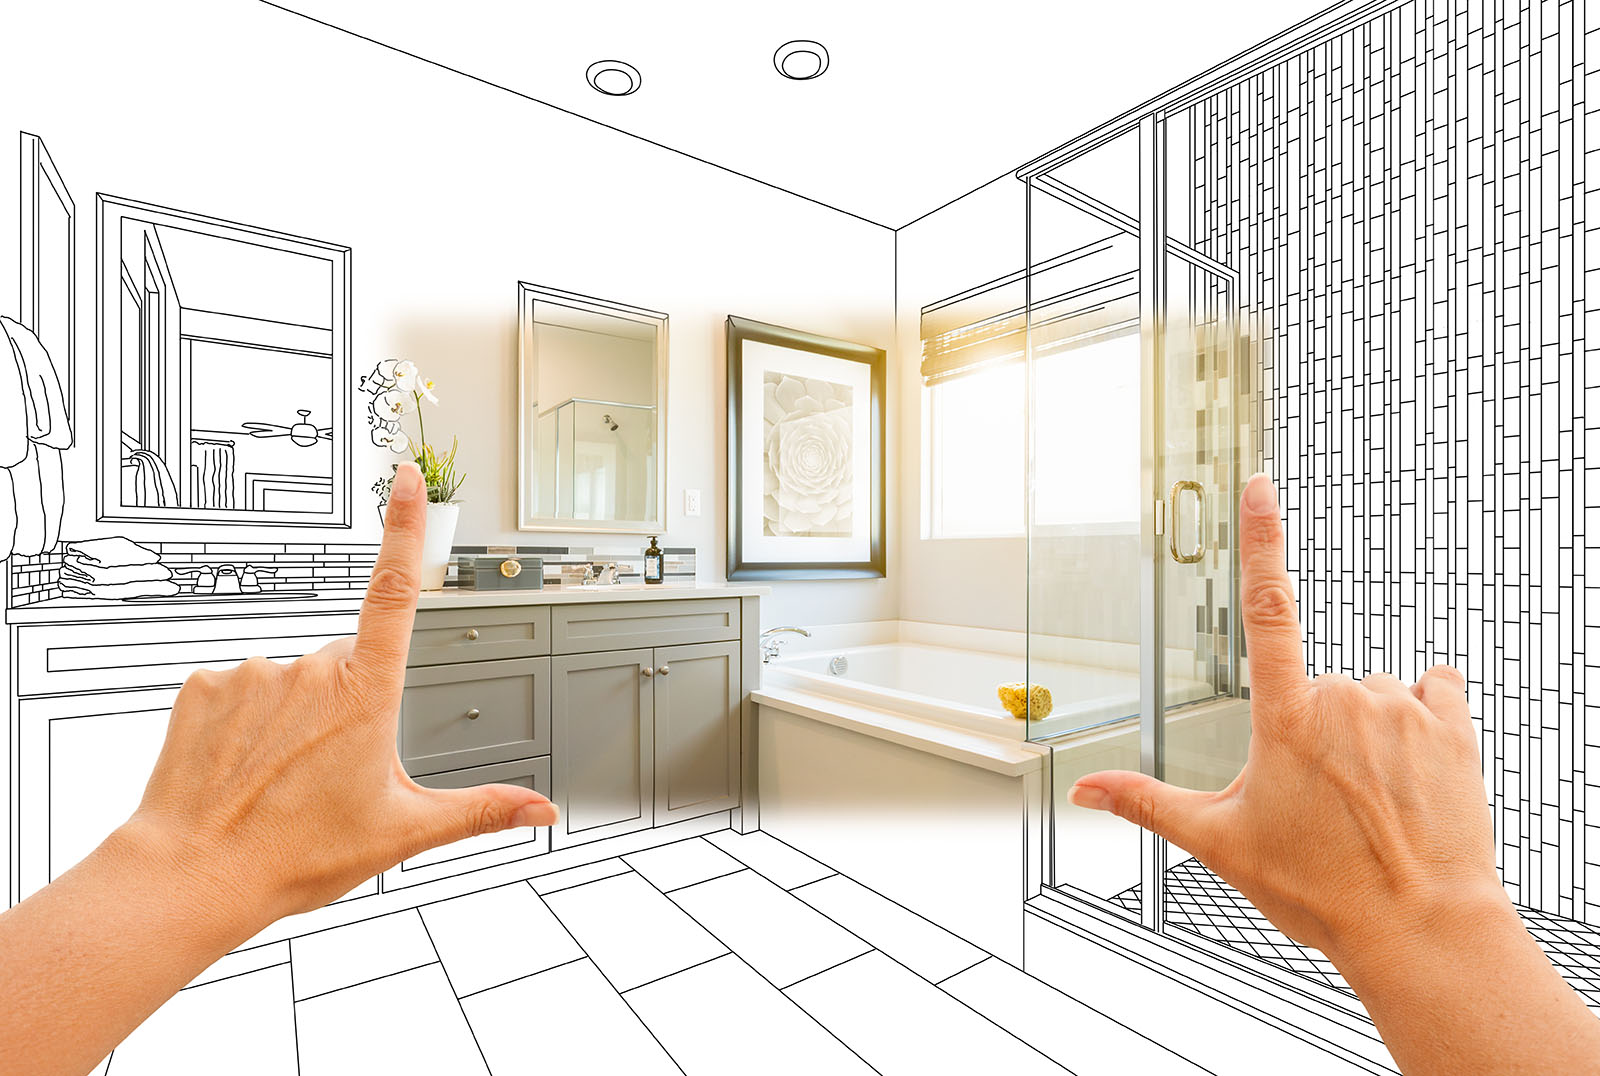 Picturing your bathroom remodel